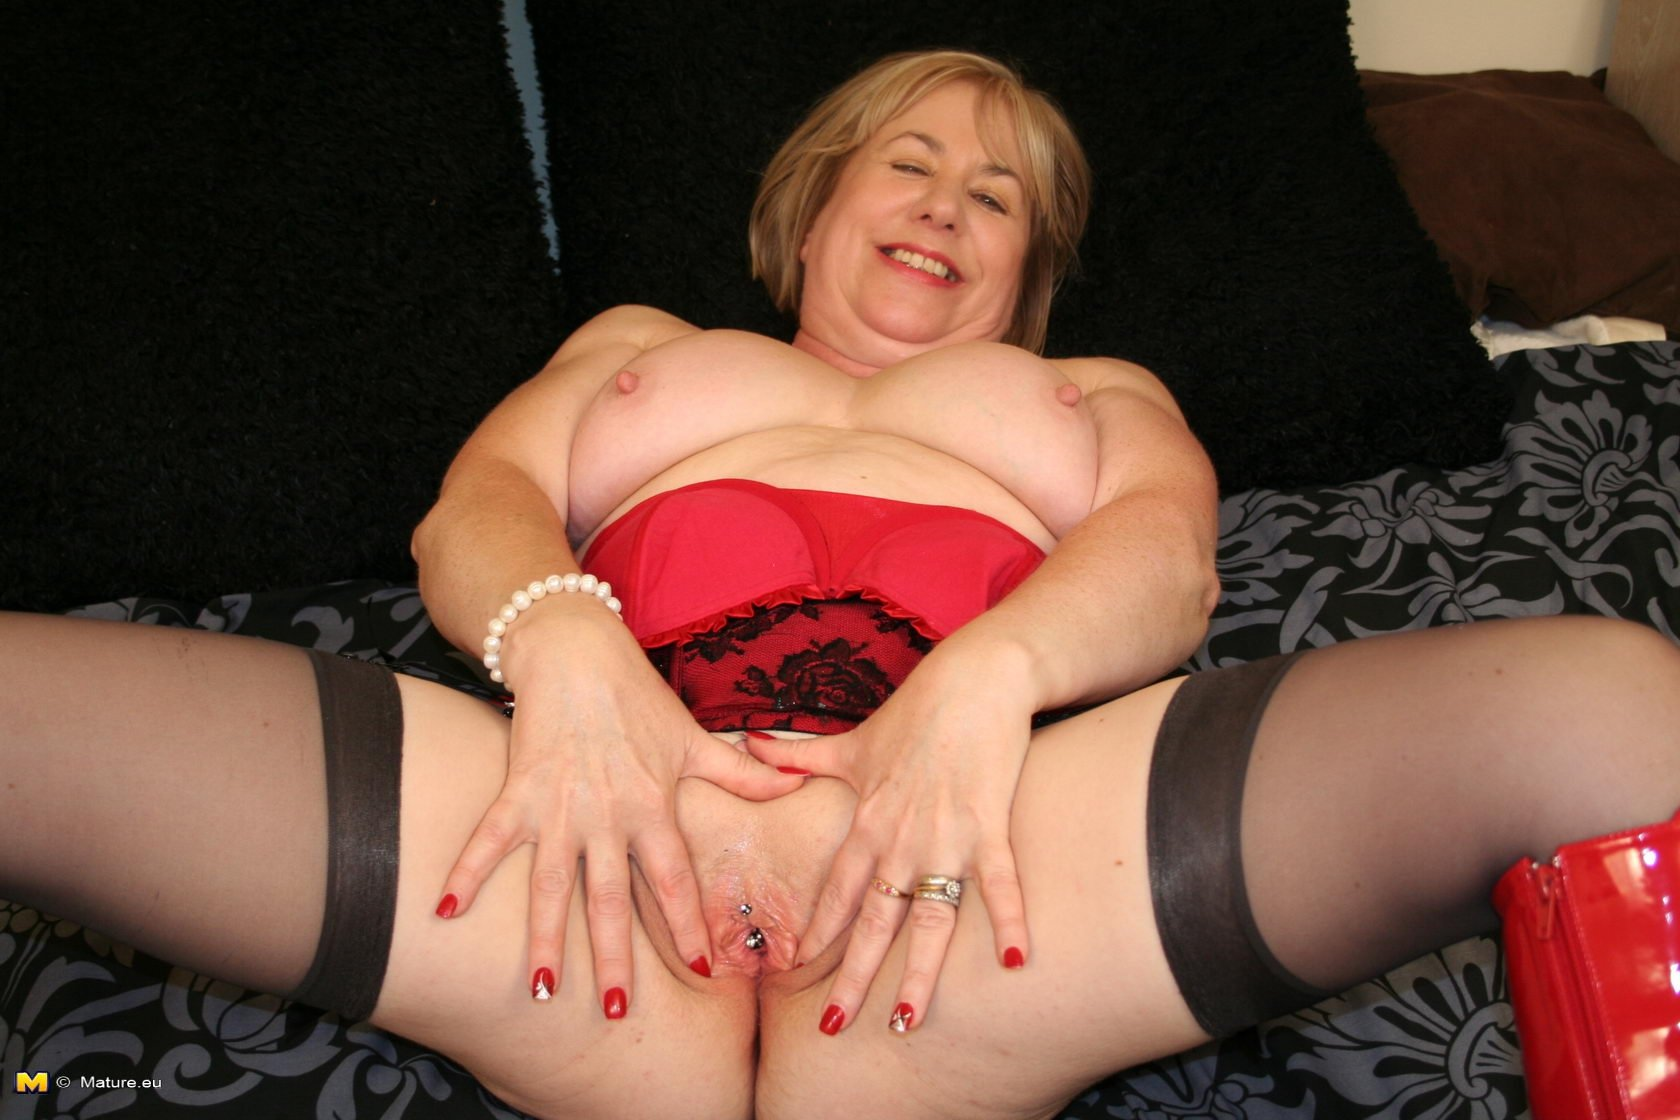 Mature sexy ladies tumblr #1